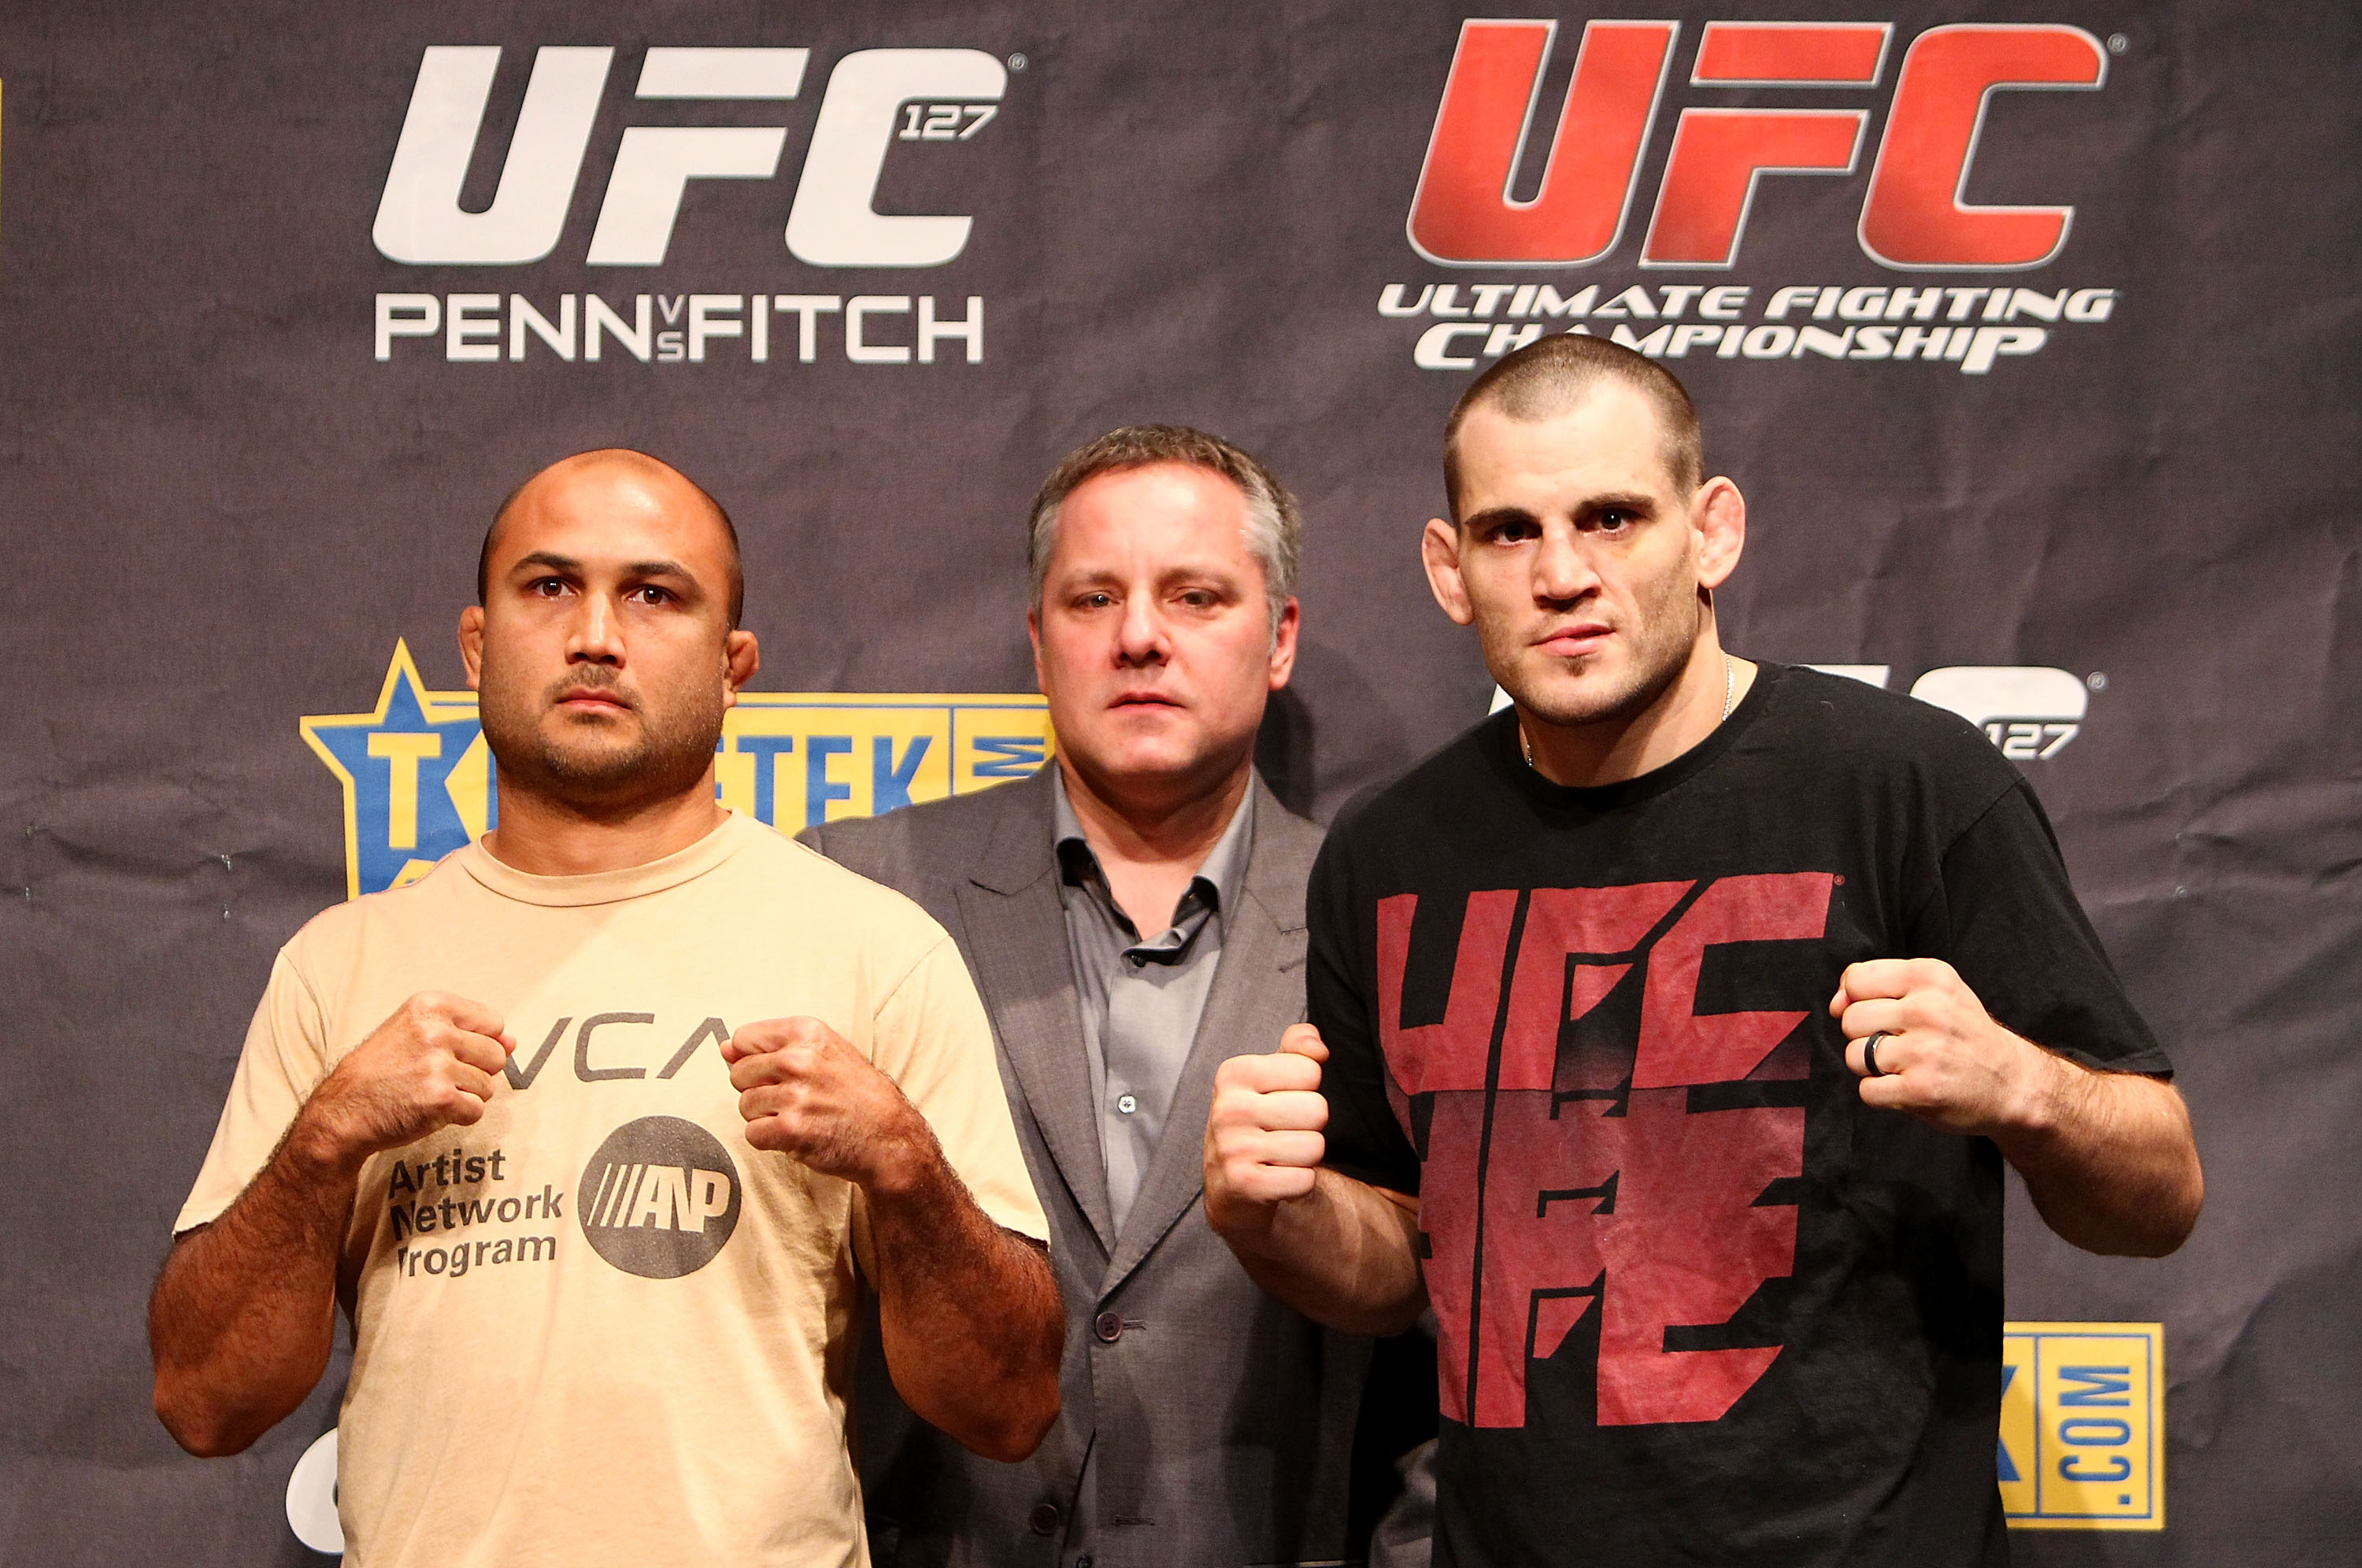 SYDNEY, AUSTRALIA - DECEMBER 14: BJ Penn, Managing Director of International Development Marshall Zelaznik and Jon Fitch pose for a photo during a UFC 127 Press Conference at Star City on December 14, 2010 in Sydney, Australia.  (Photo by Mark Nolan/Getty